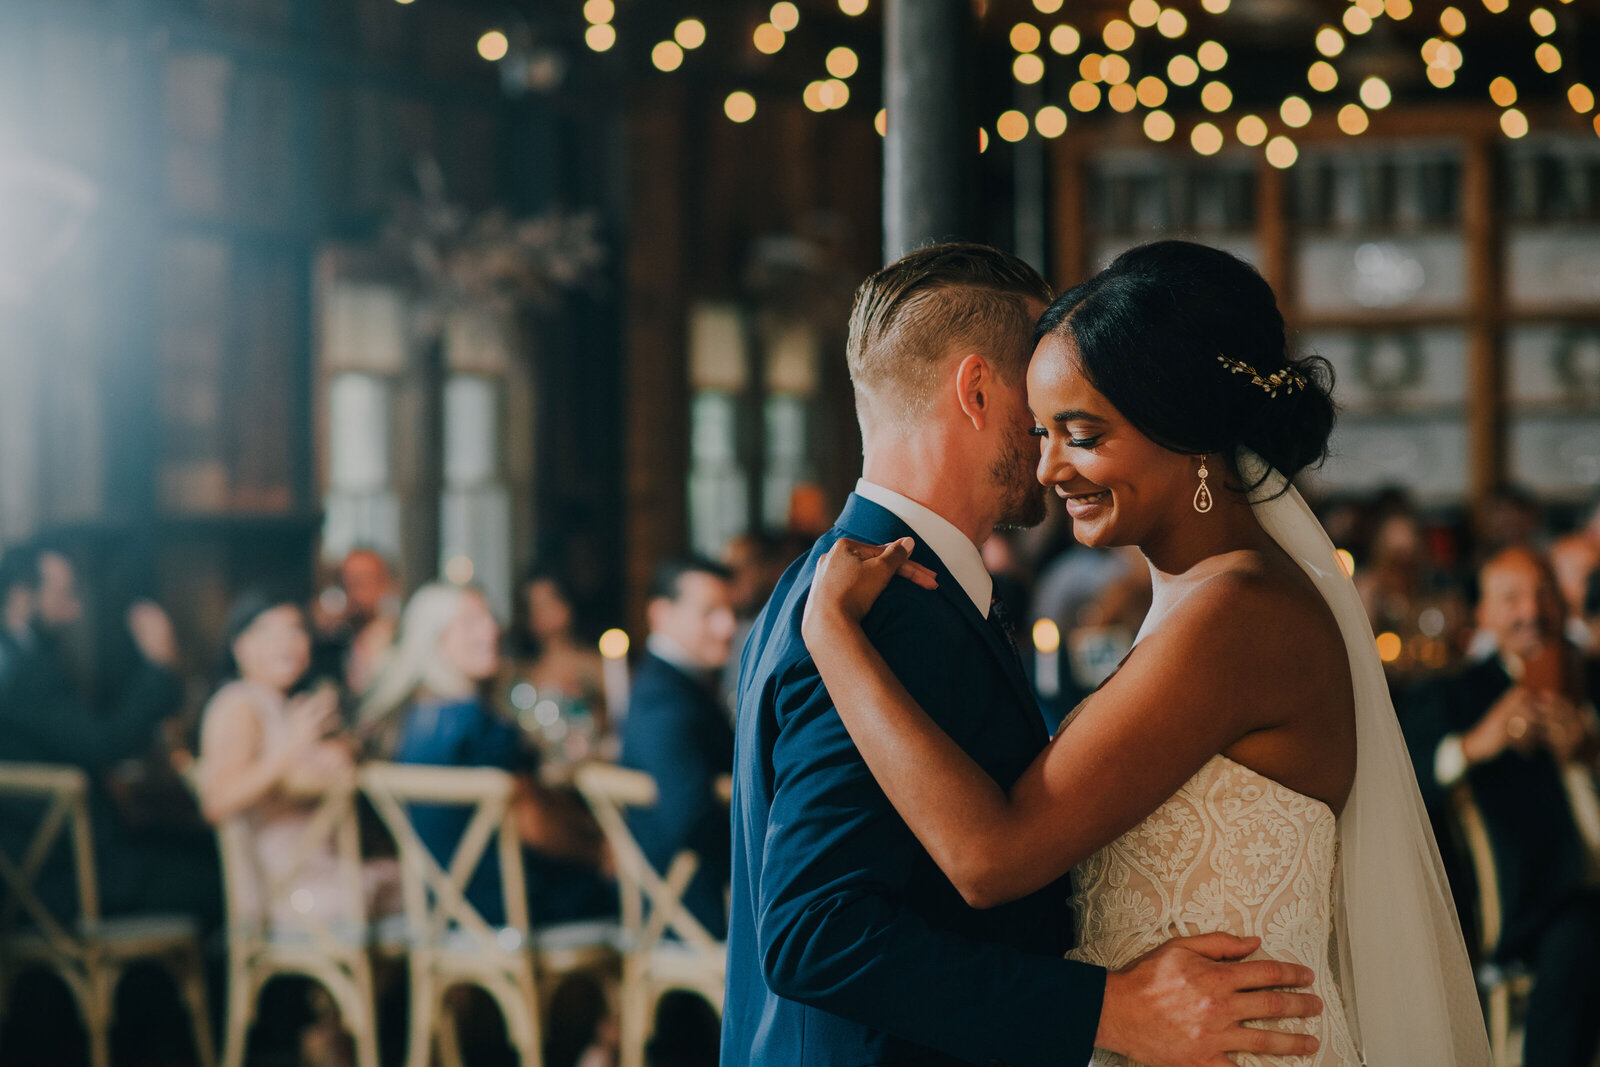 bride wearing white dress and veil clutches her grooms shoulder and leans in while they share a first dance with sparkling fairy lights in the background inside at terrain gardens by philadelphia wedding photographer alex medvick